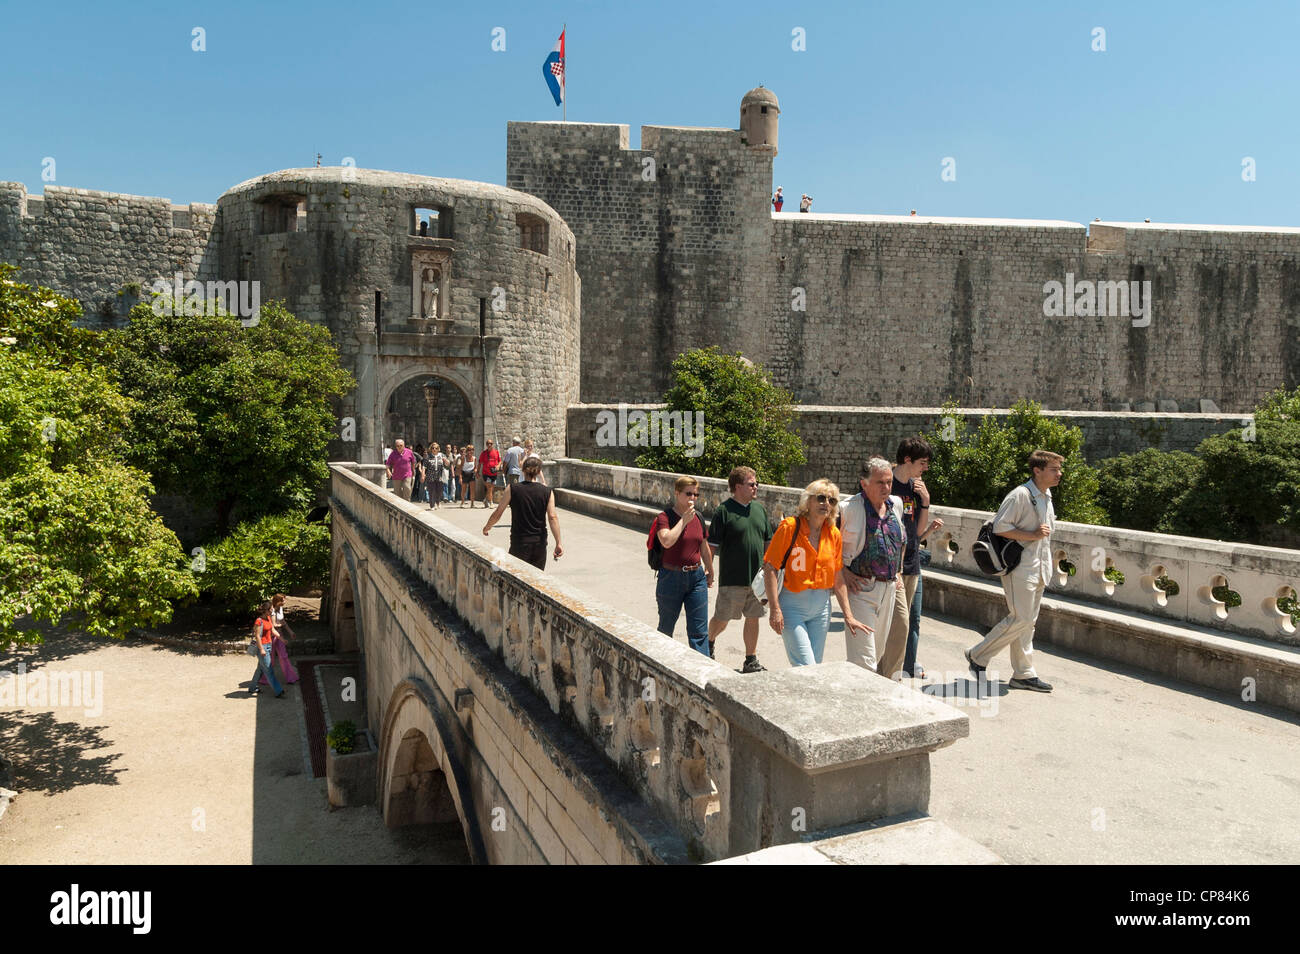 Dubrovnik, Croatia - Tourists at the Pile Gate entrance to the old city and city walls - Stock Image